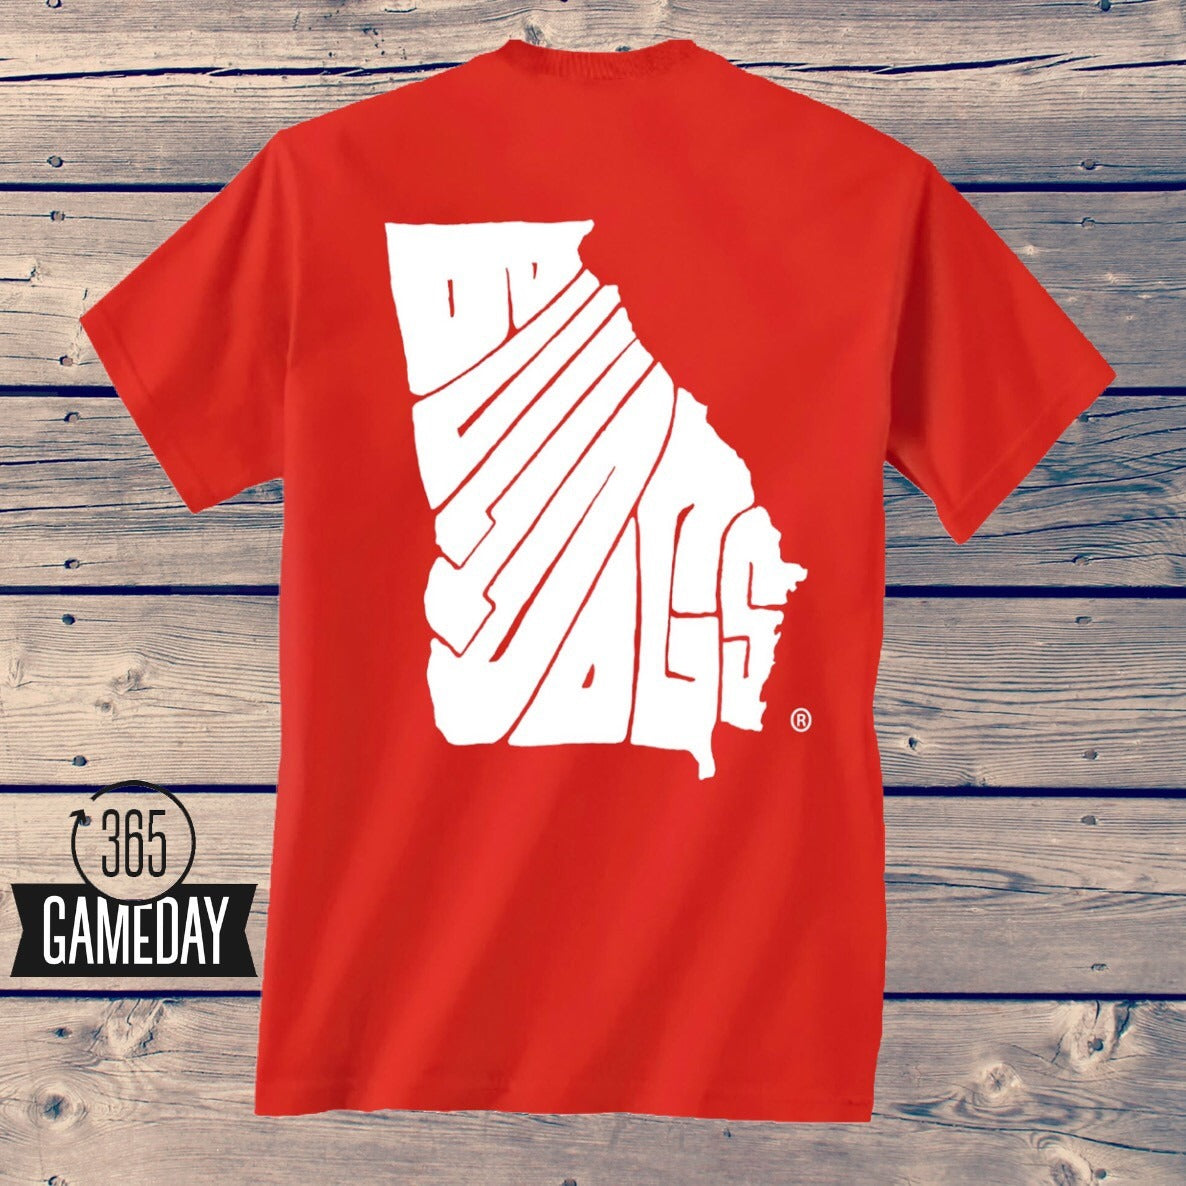 "Georgia ""Gameday"" Shirt (50% OFF)"